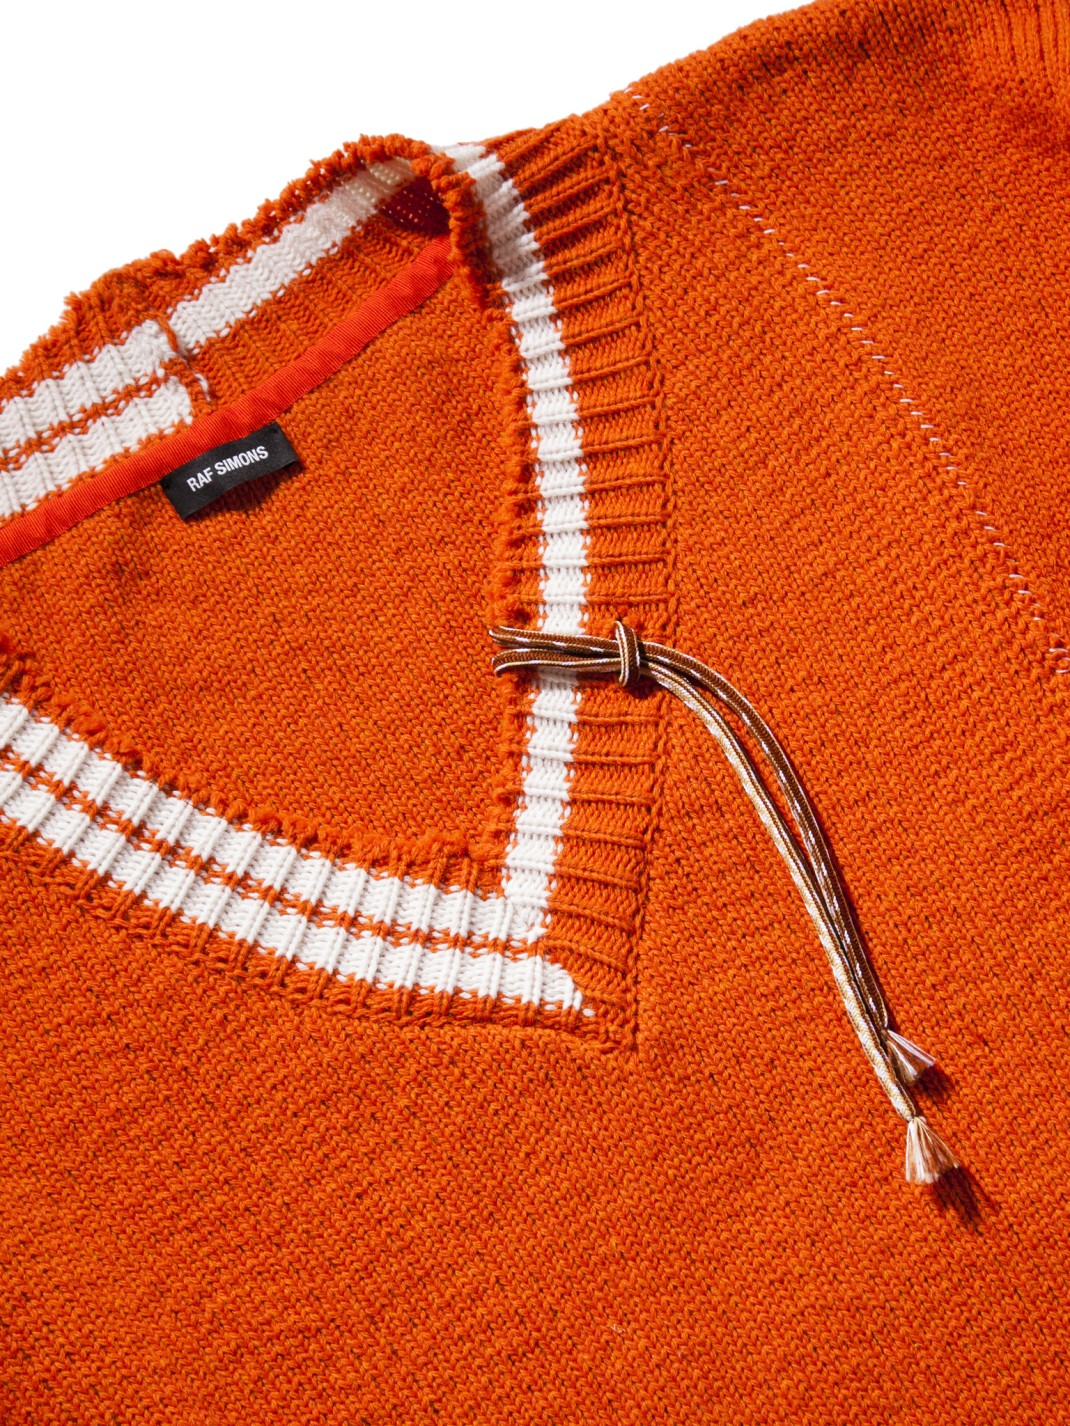 RAF_SIMONS_Extremely_Big_Destroyed_Stripe_V-Neck_Knit_Sweater_Orange_White_-2